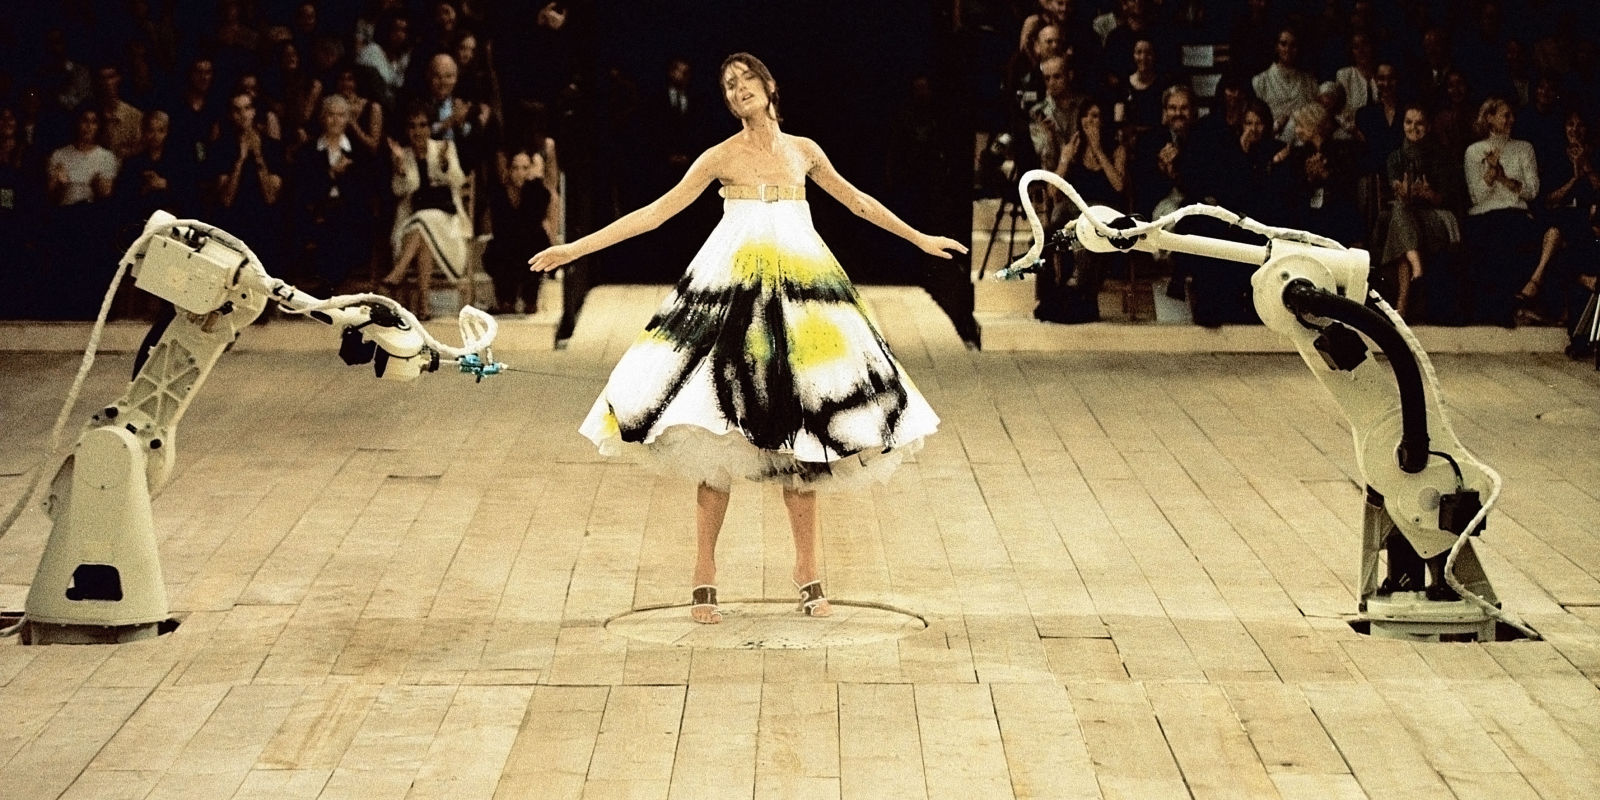 Alexander mcqueen s best runway shows of all time for Runway fashion show video